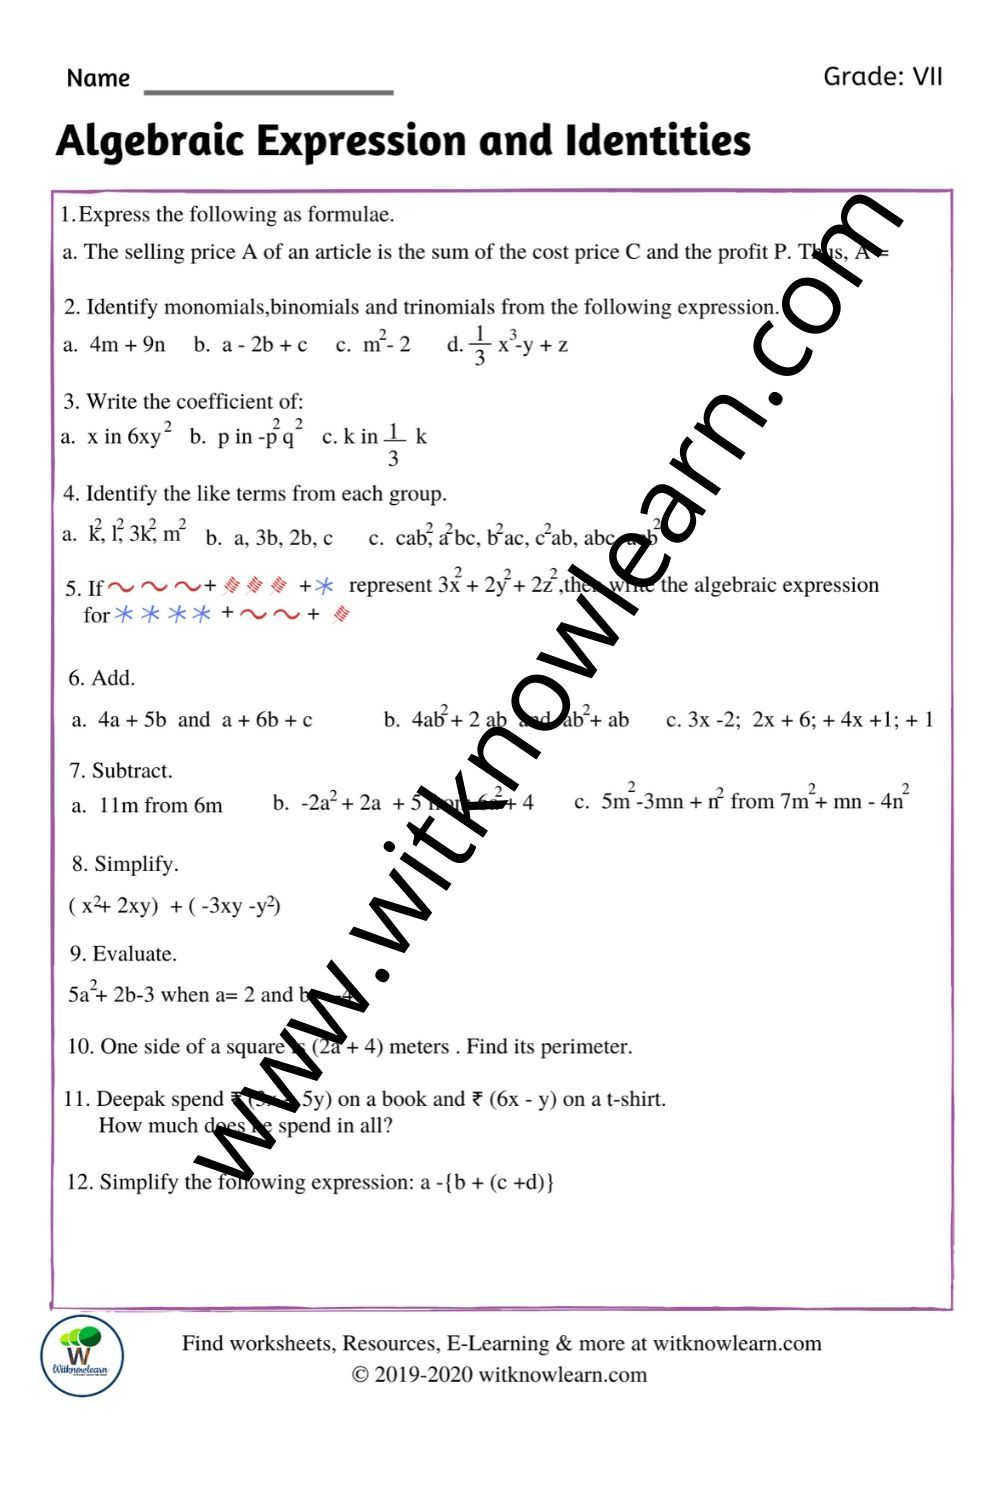 Algebraic Expression And Identities Worksheet In 2020 Algebraic Expressions Simplifying Algebraic Expressions Mathematical Expression